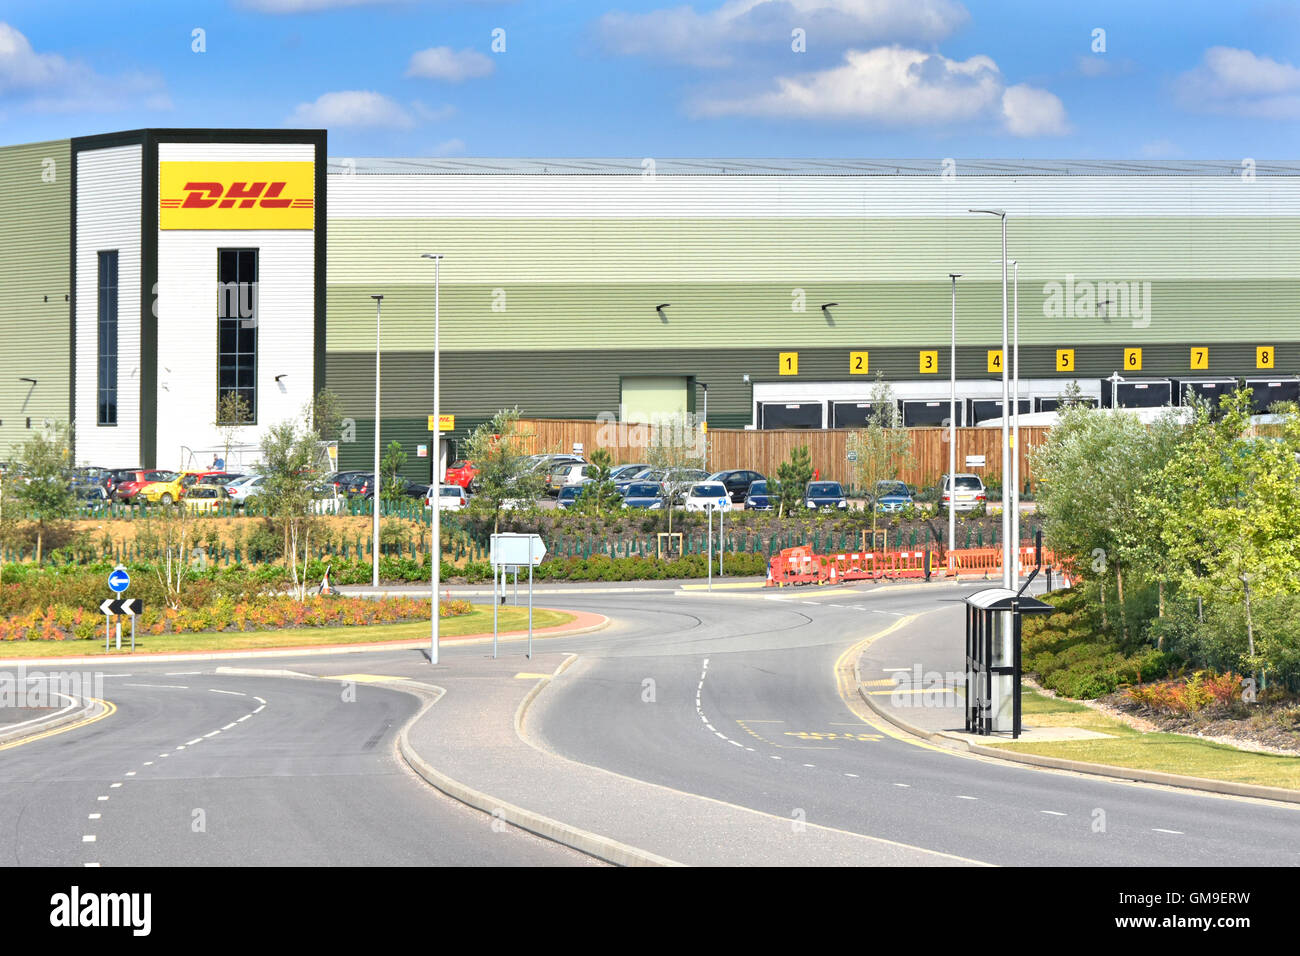 DHL logistics uk distribution warehouse on the Rugby Gateway development centrally located in middle England close - Stock Image